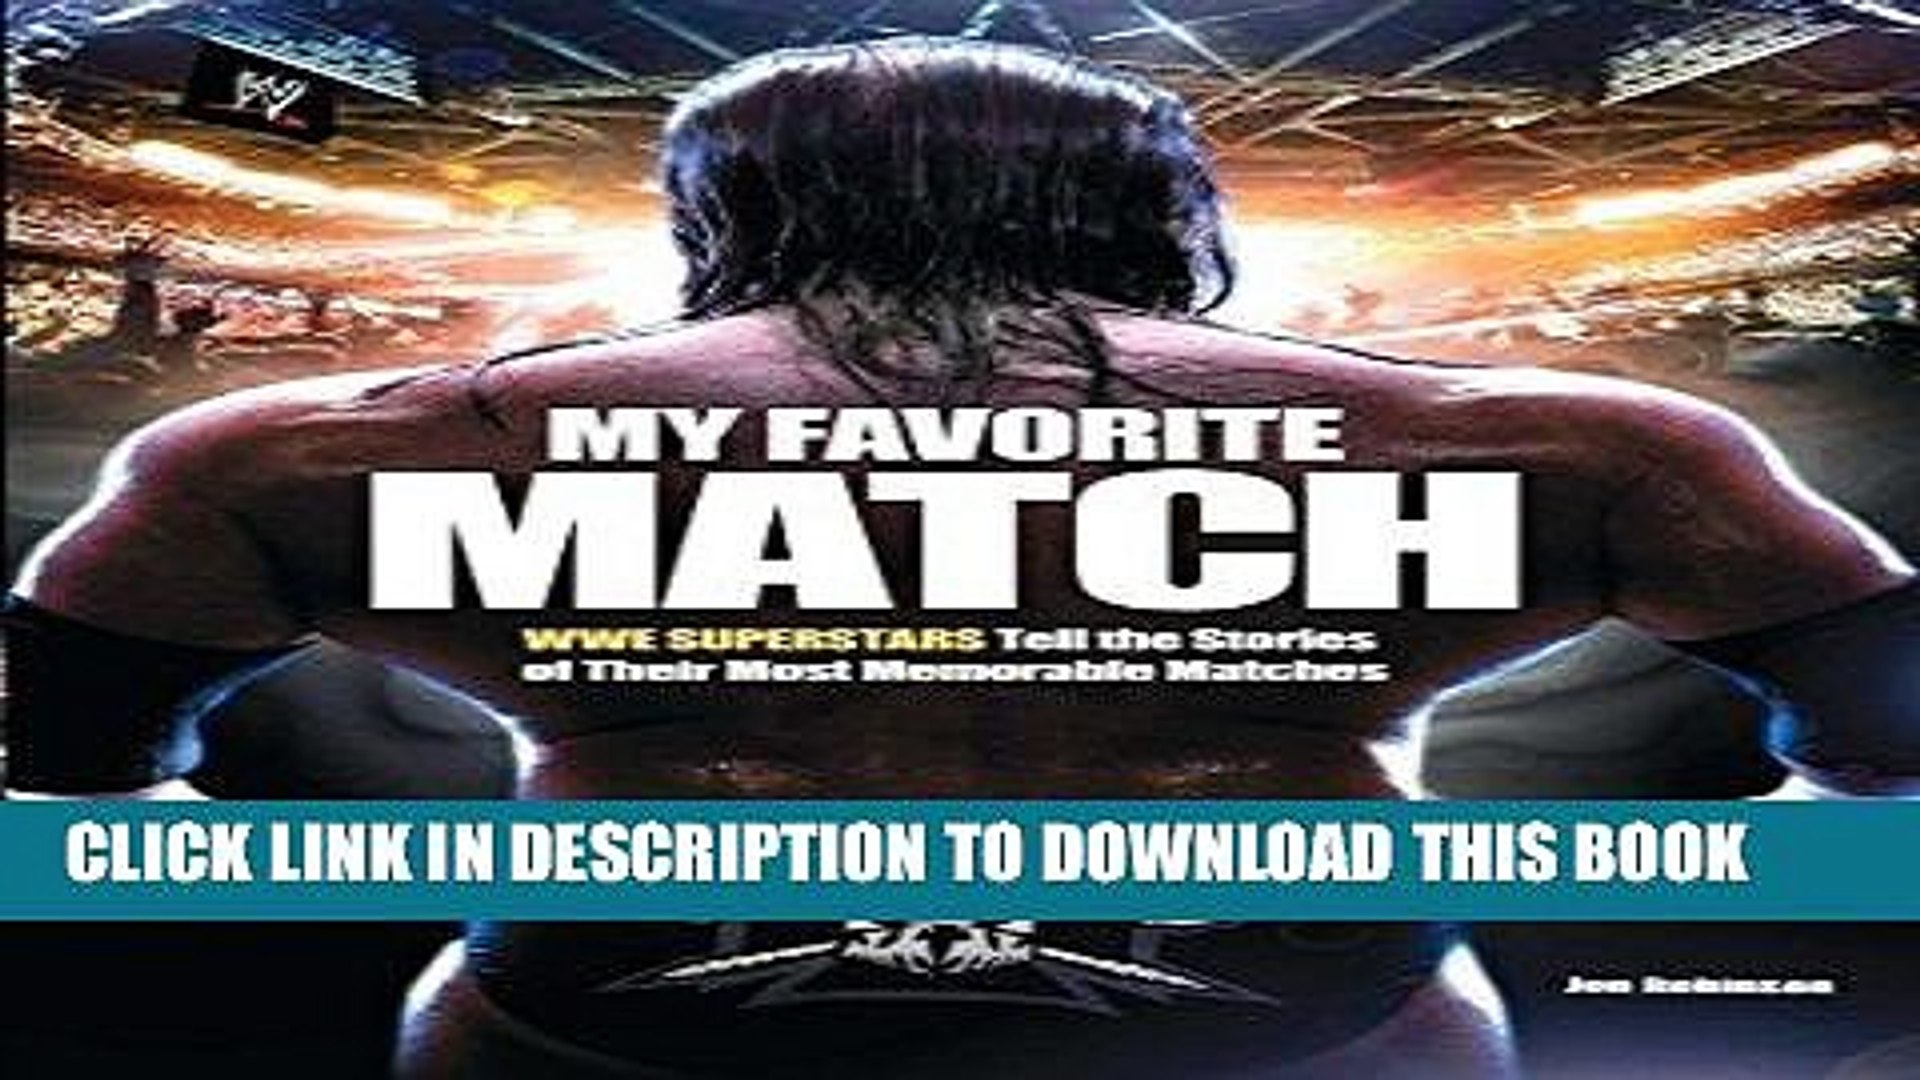 [PDF] My Favorite Match: WWE Superstars Tell the Stories of Their Most Memorable Matches Full Online